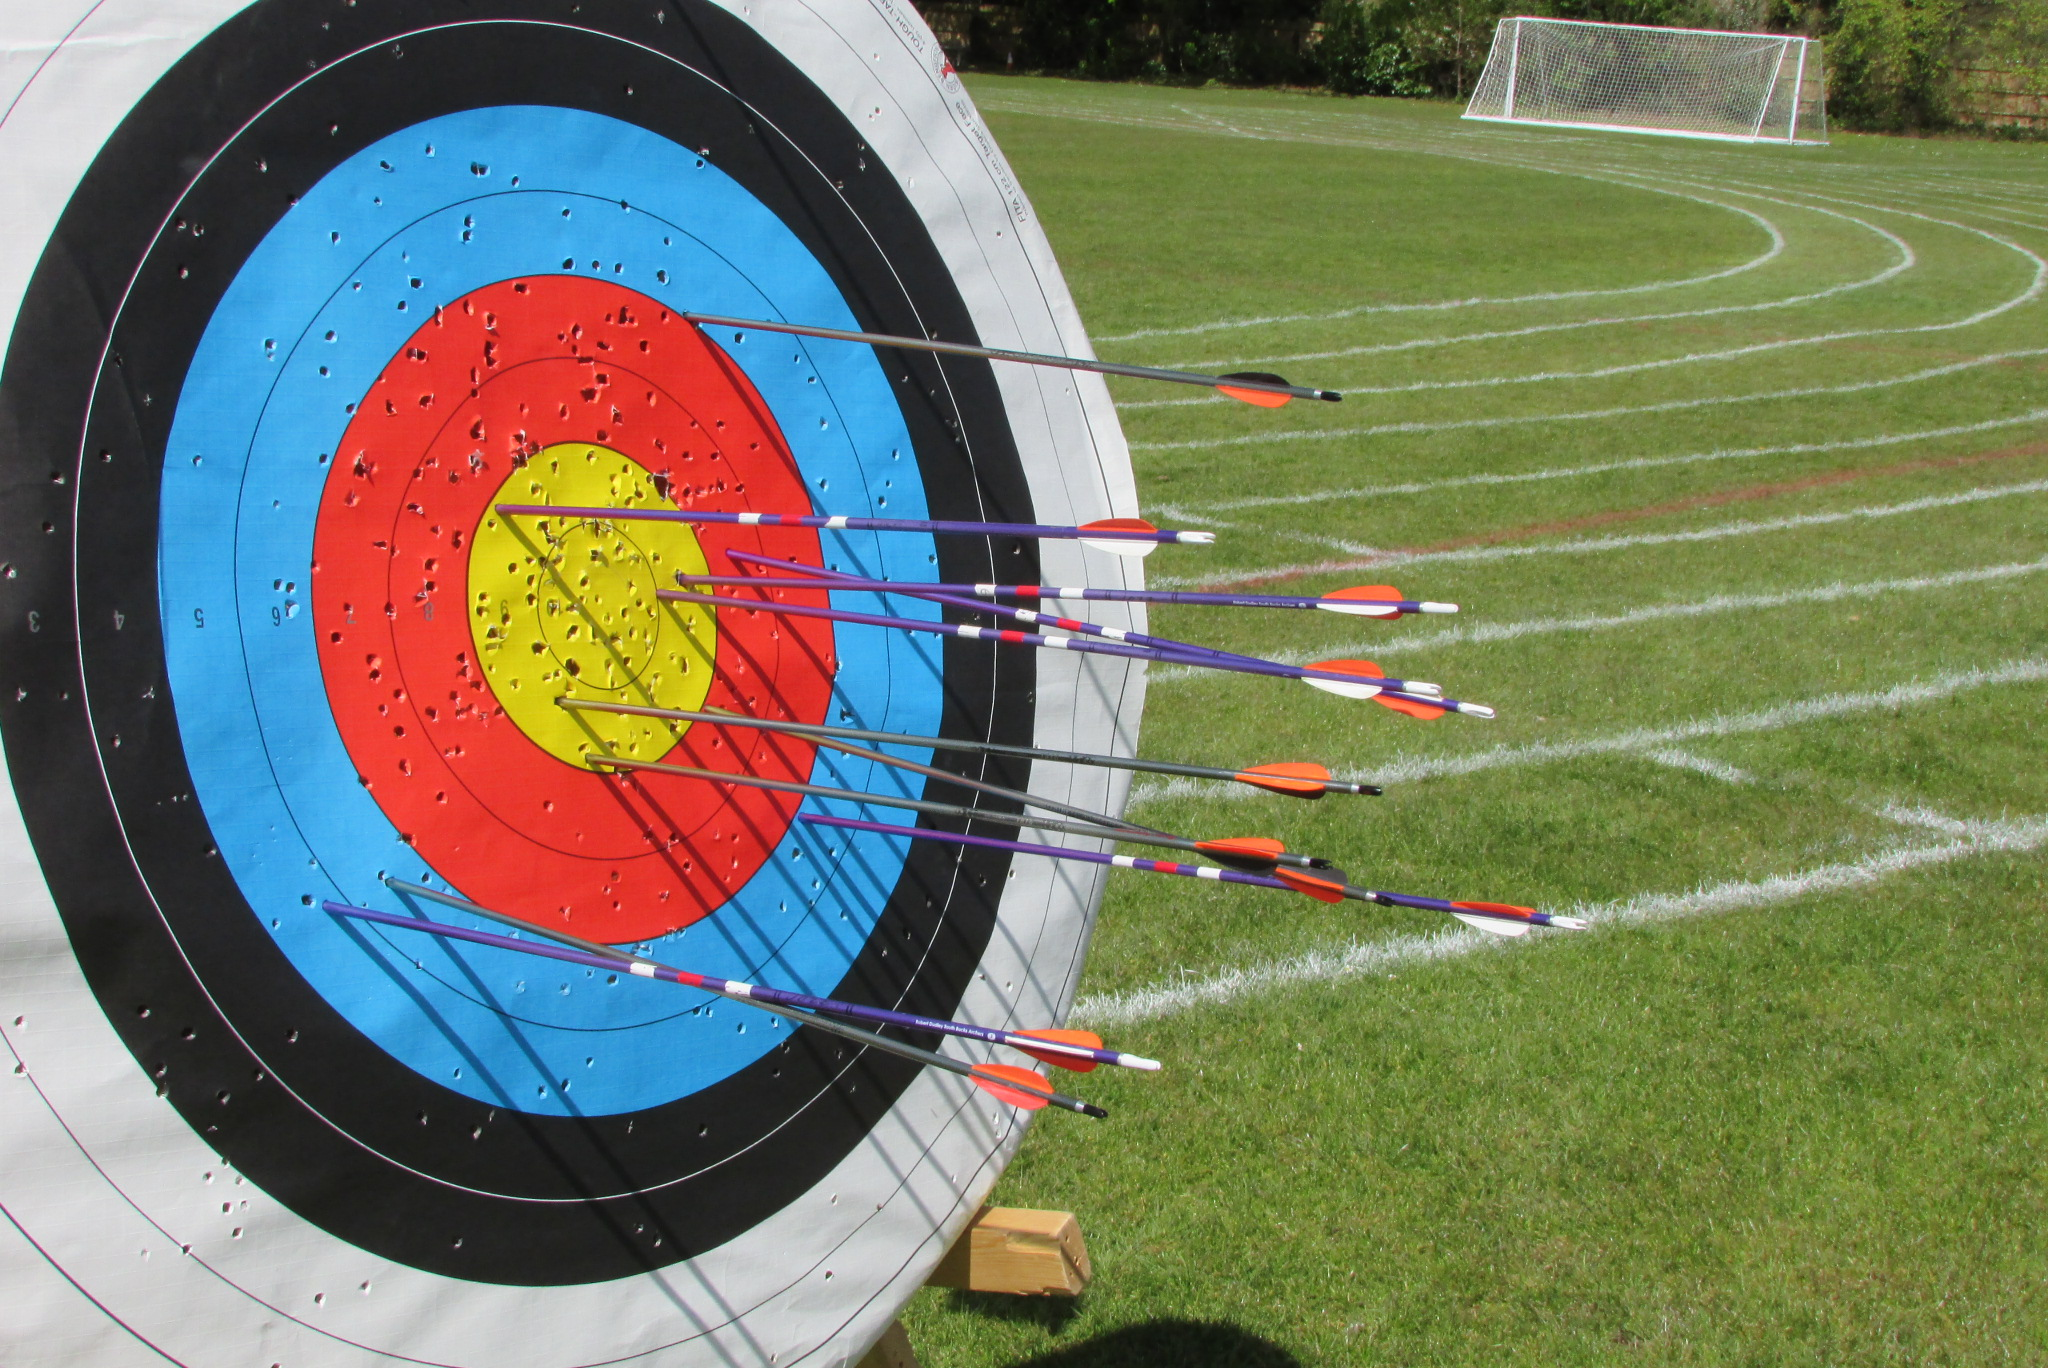 South Bucks Archers Outdoor Range Photo